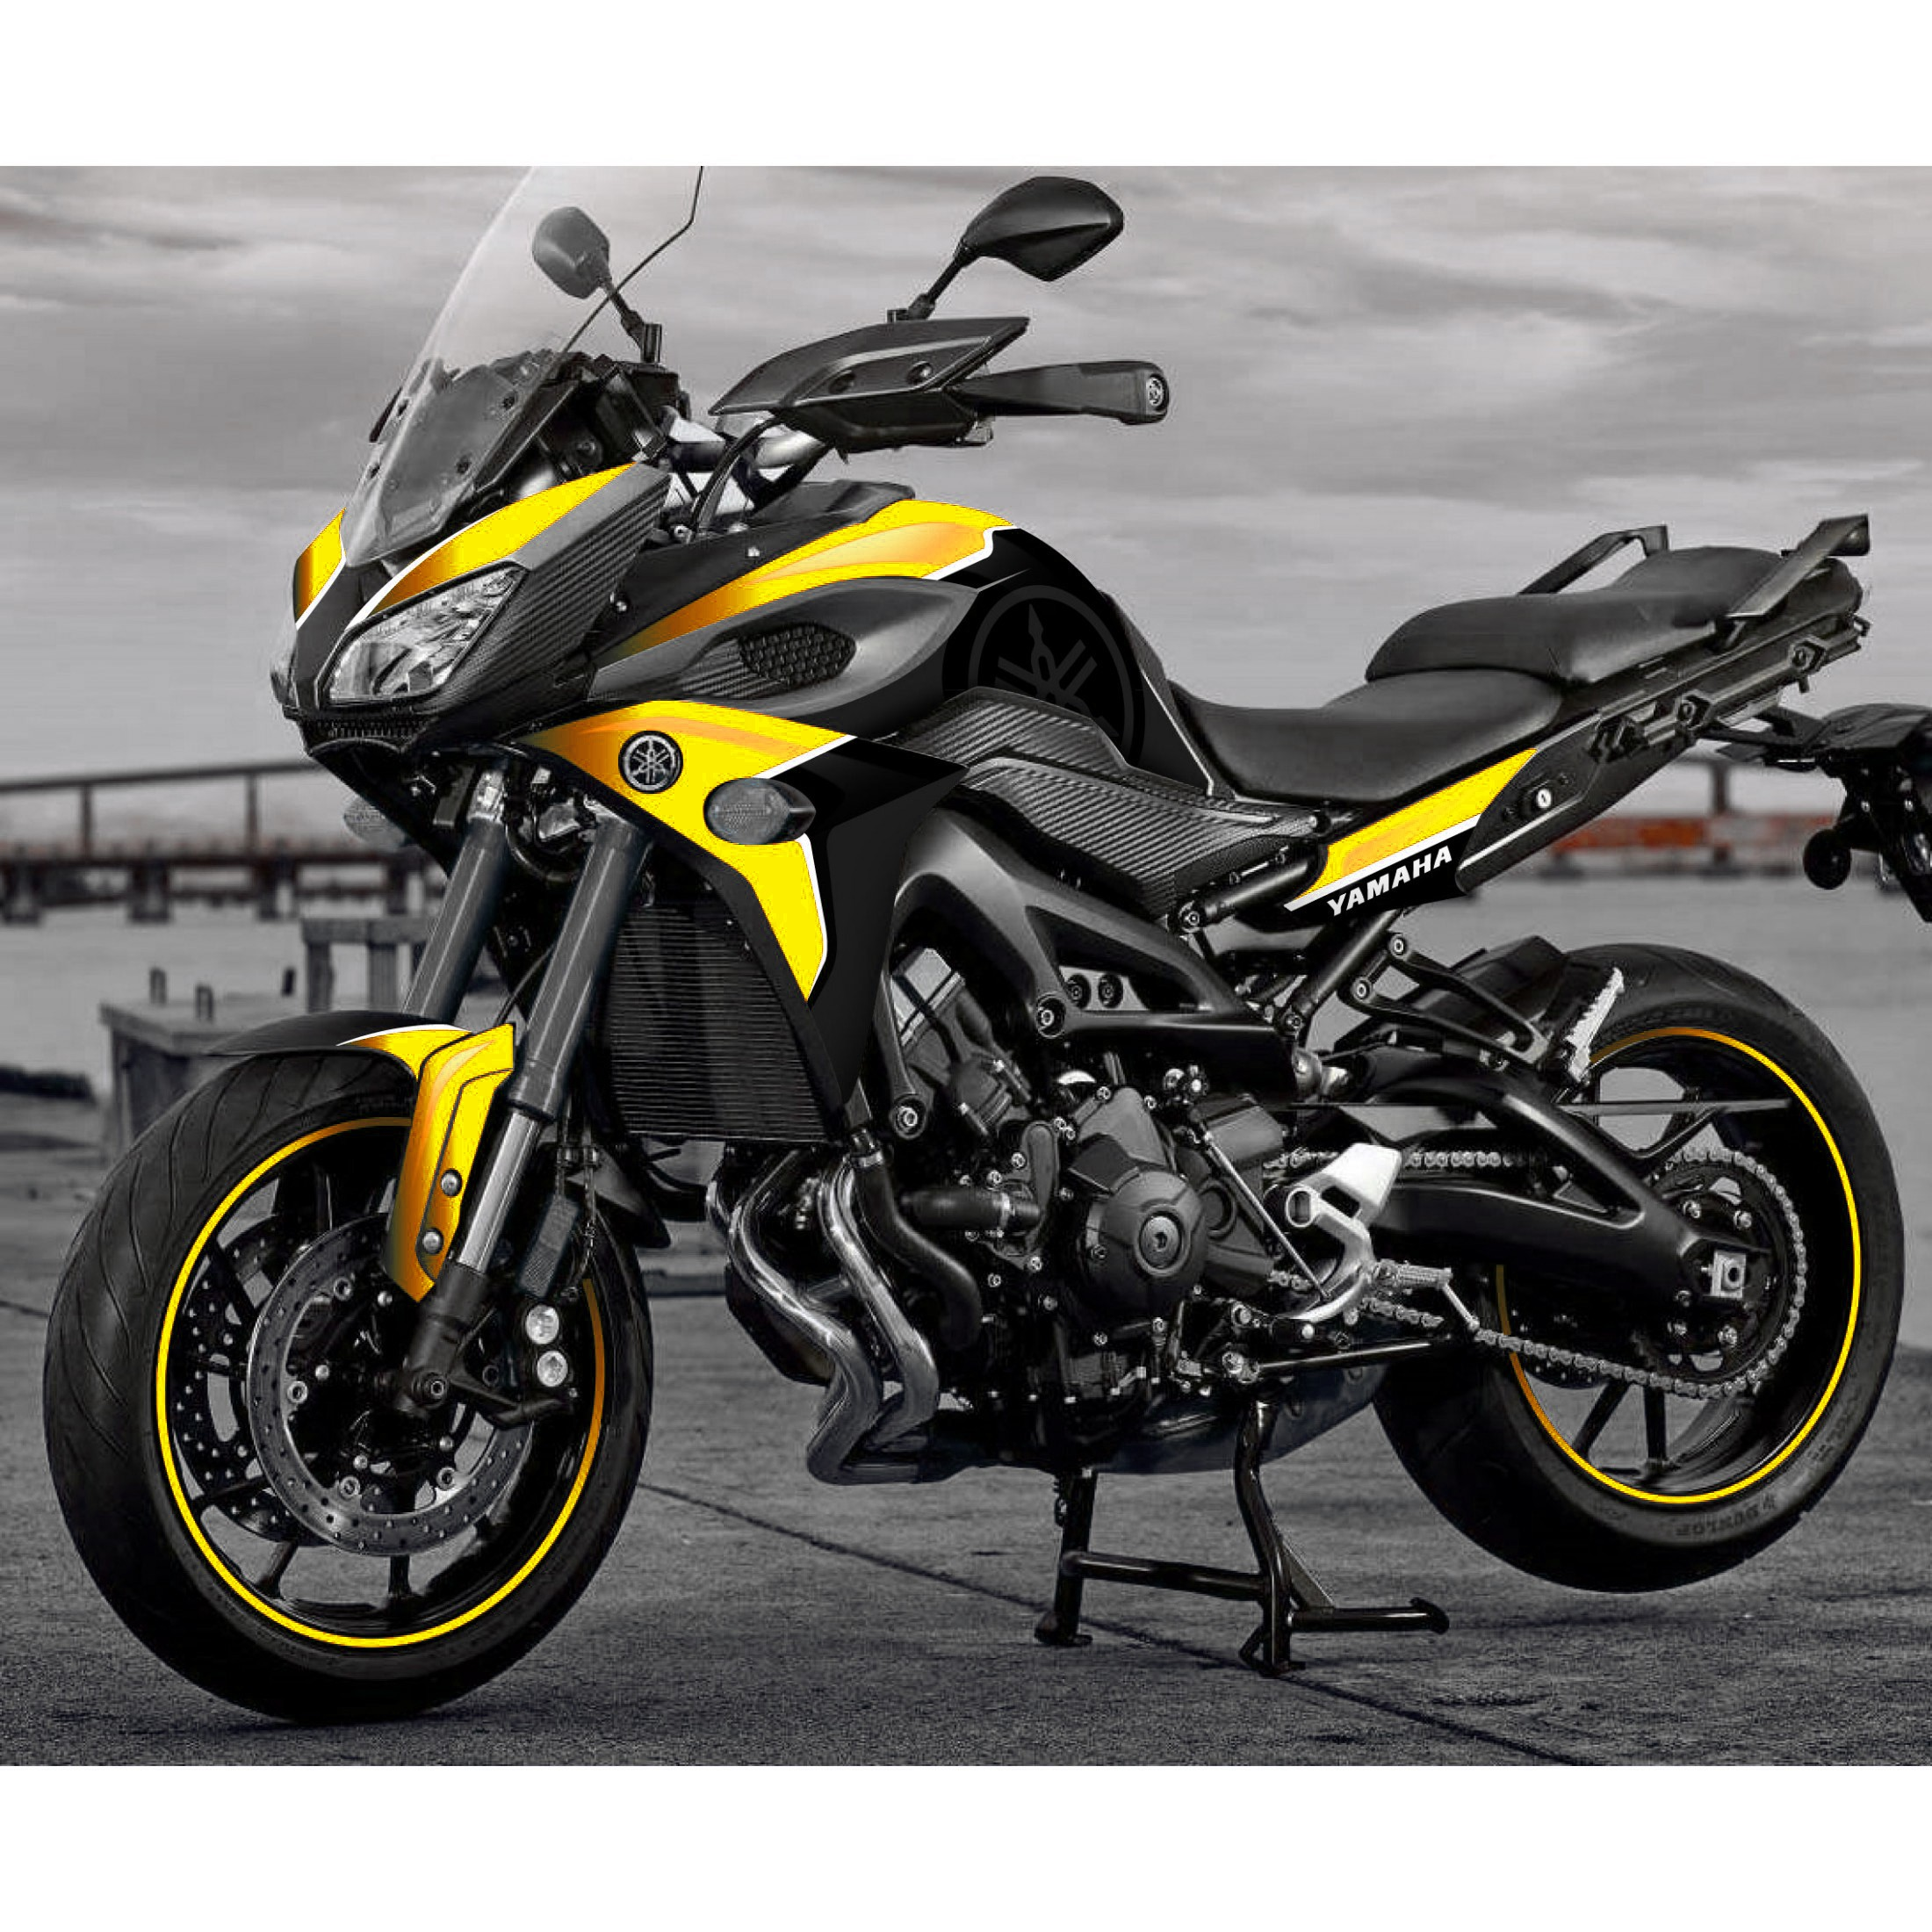 kit decoration yellow edition yamaha mt 09 tracer idgrafix. Black Bedroom Furniture Sets. Home Design Ideas